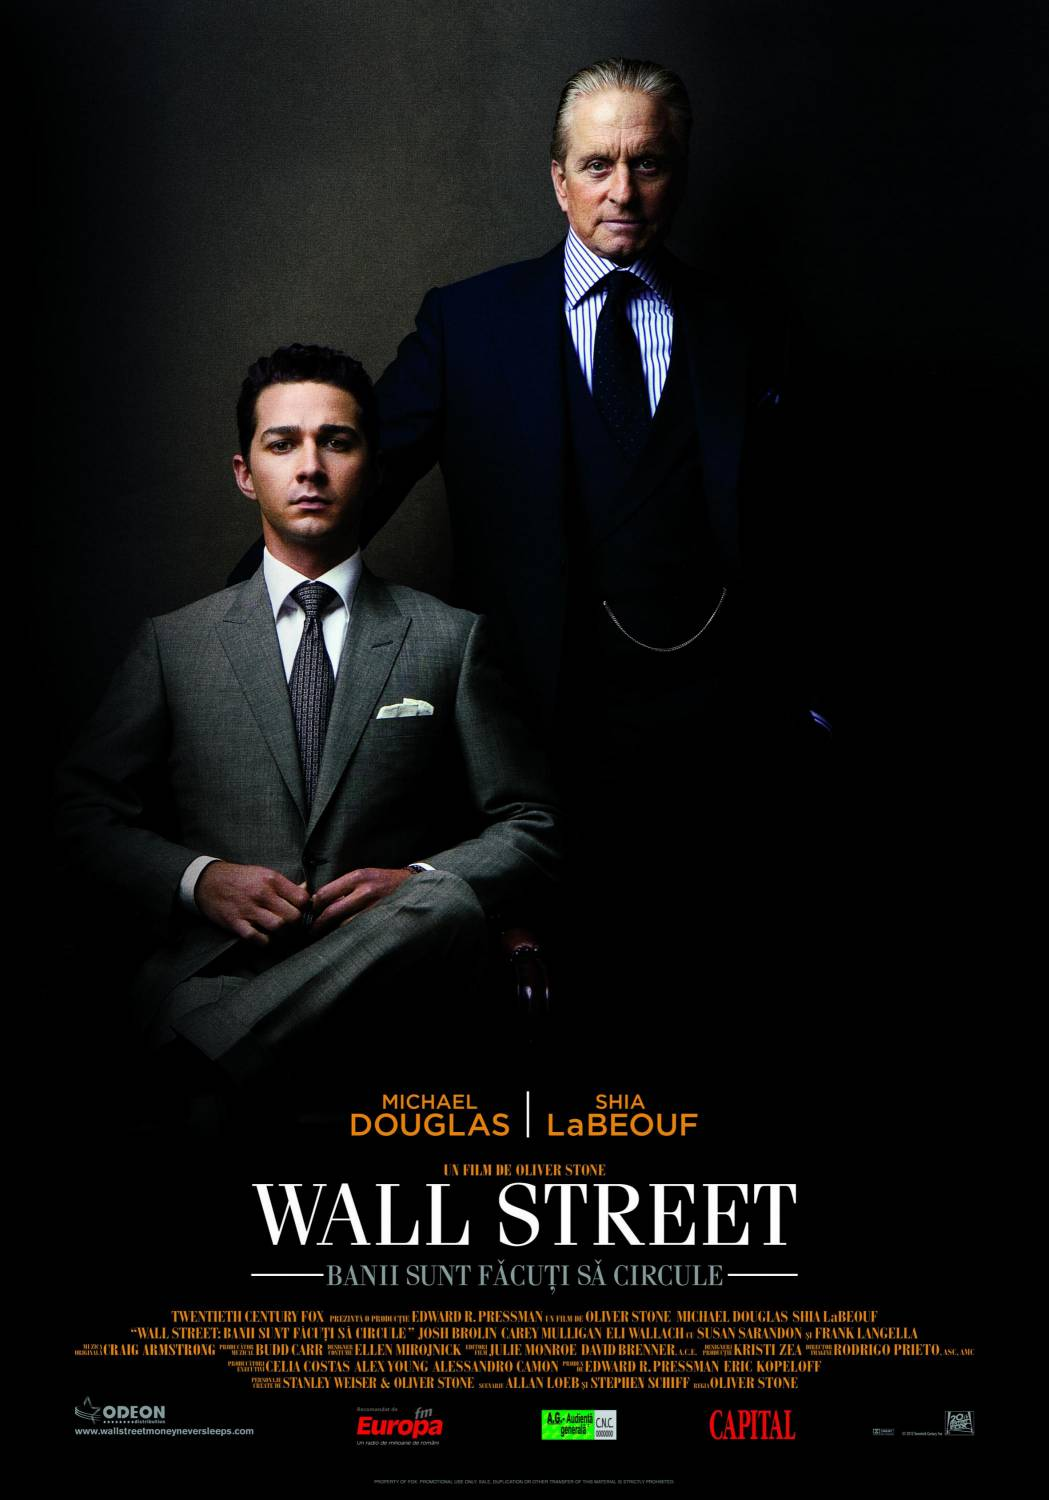 Wall Street: Money Never Sleeps (2010) Wall Street: Banii sunt facuti sa circule